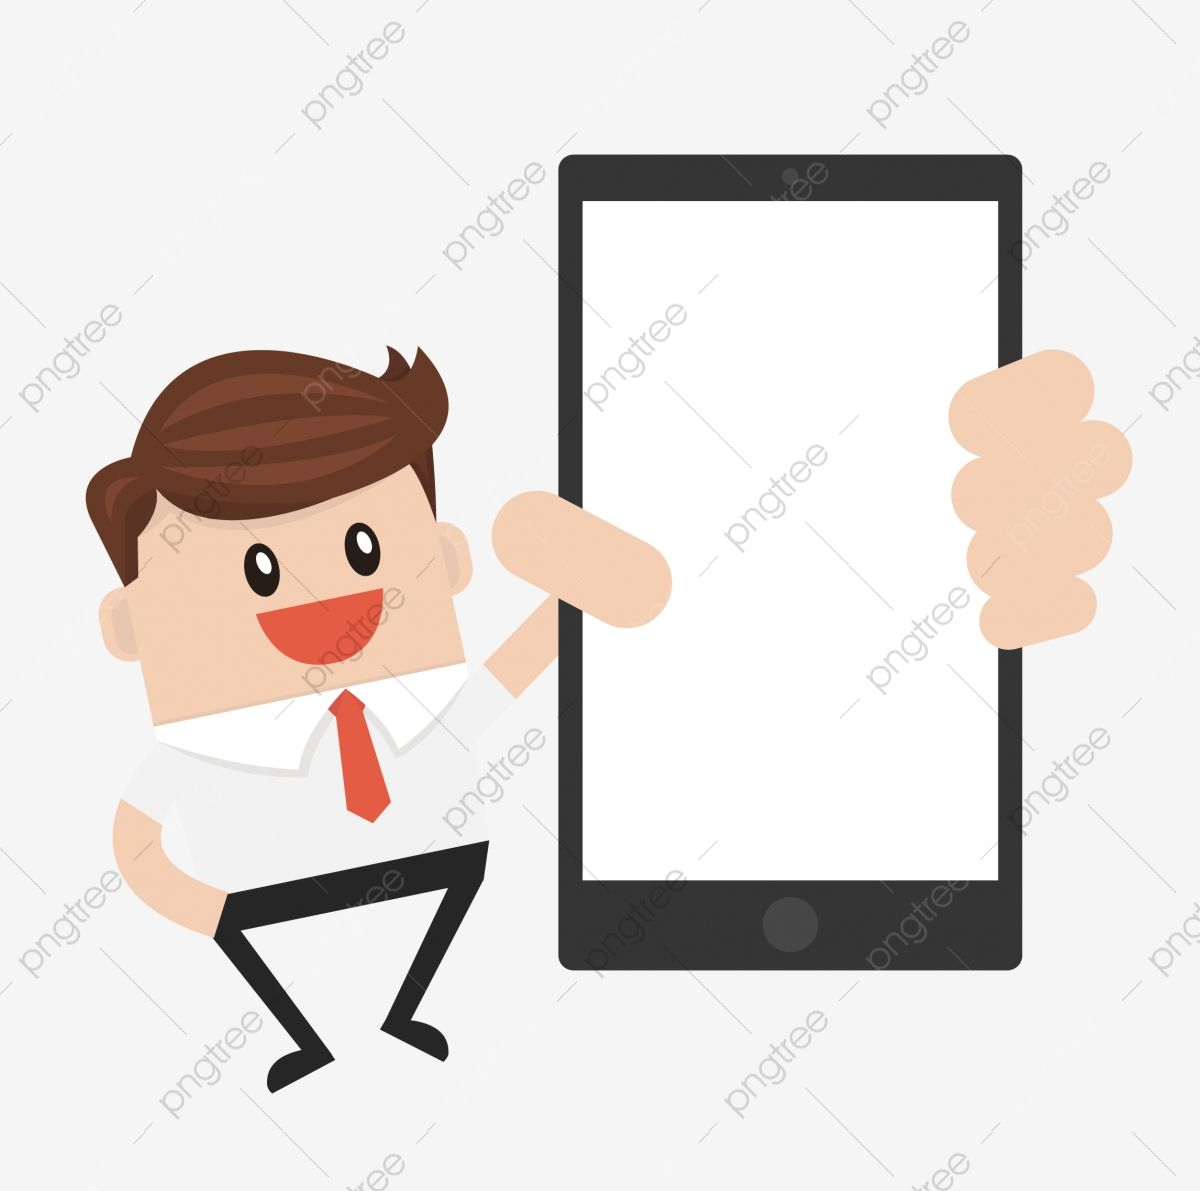 Hand Holding Iphone Png Image Hand Holding Phone Iphone Phone